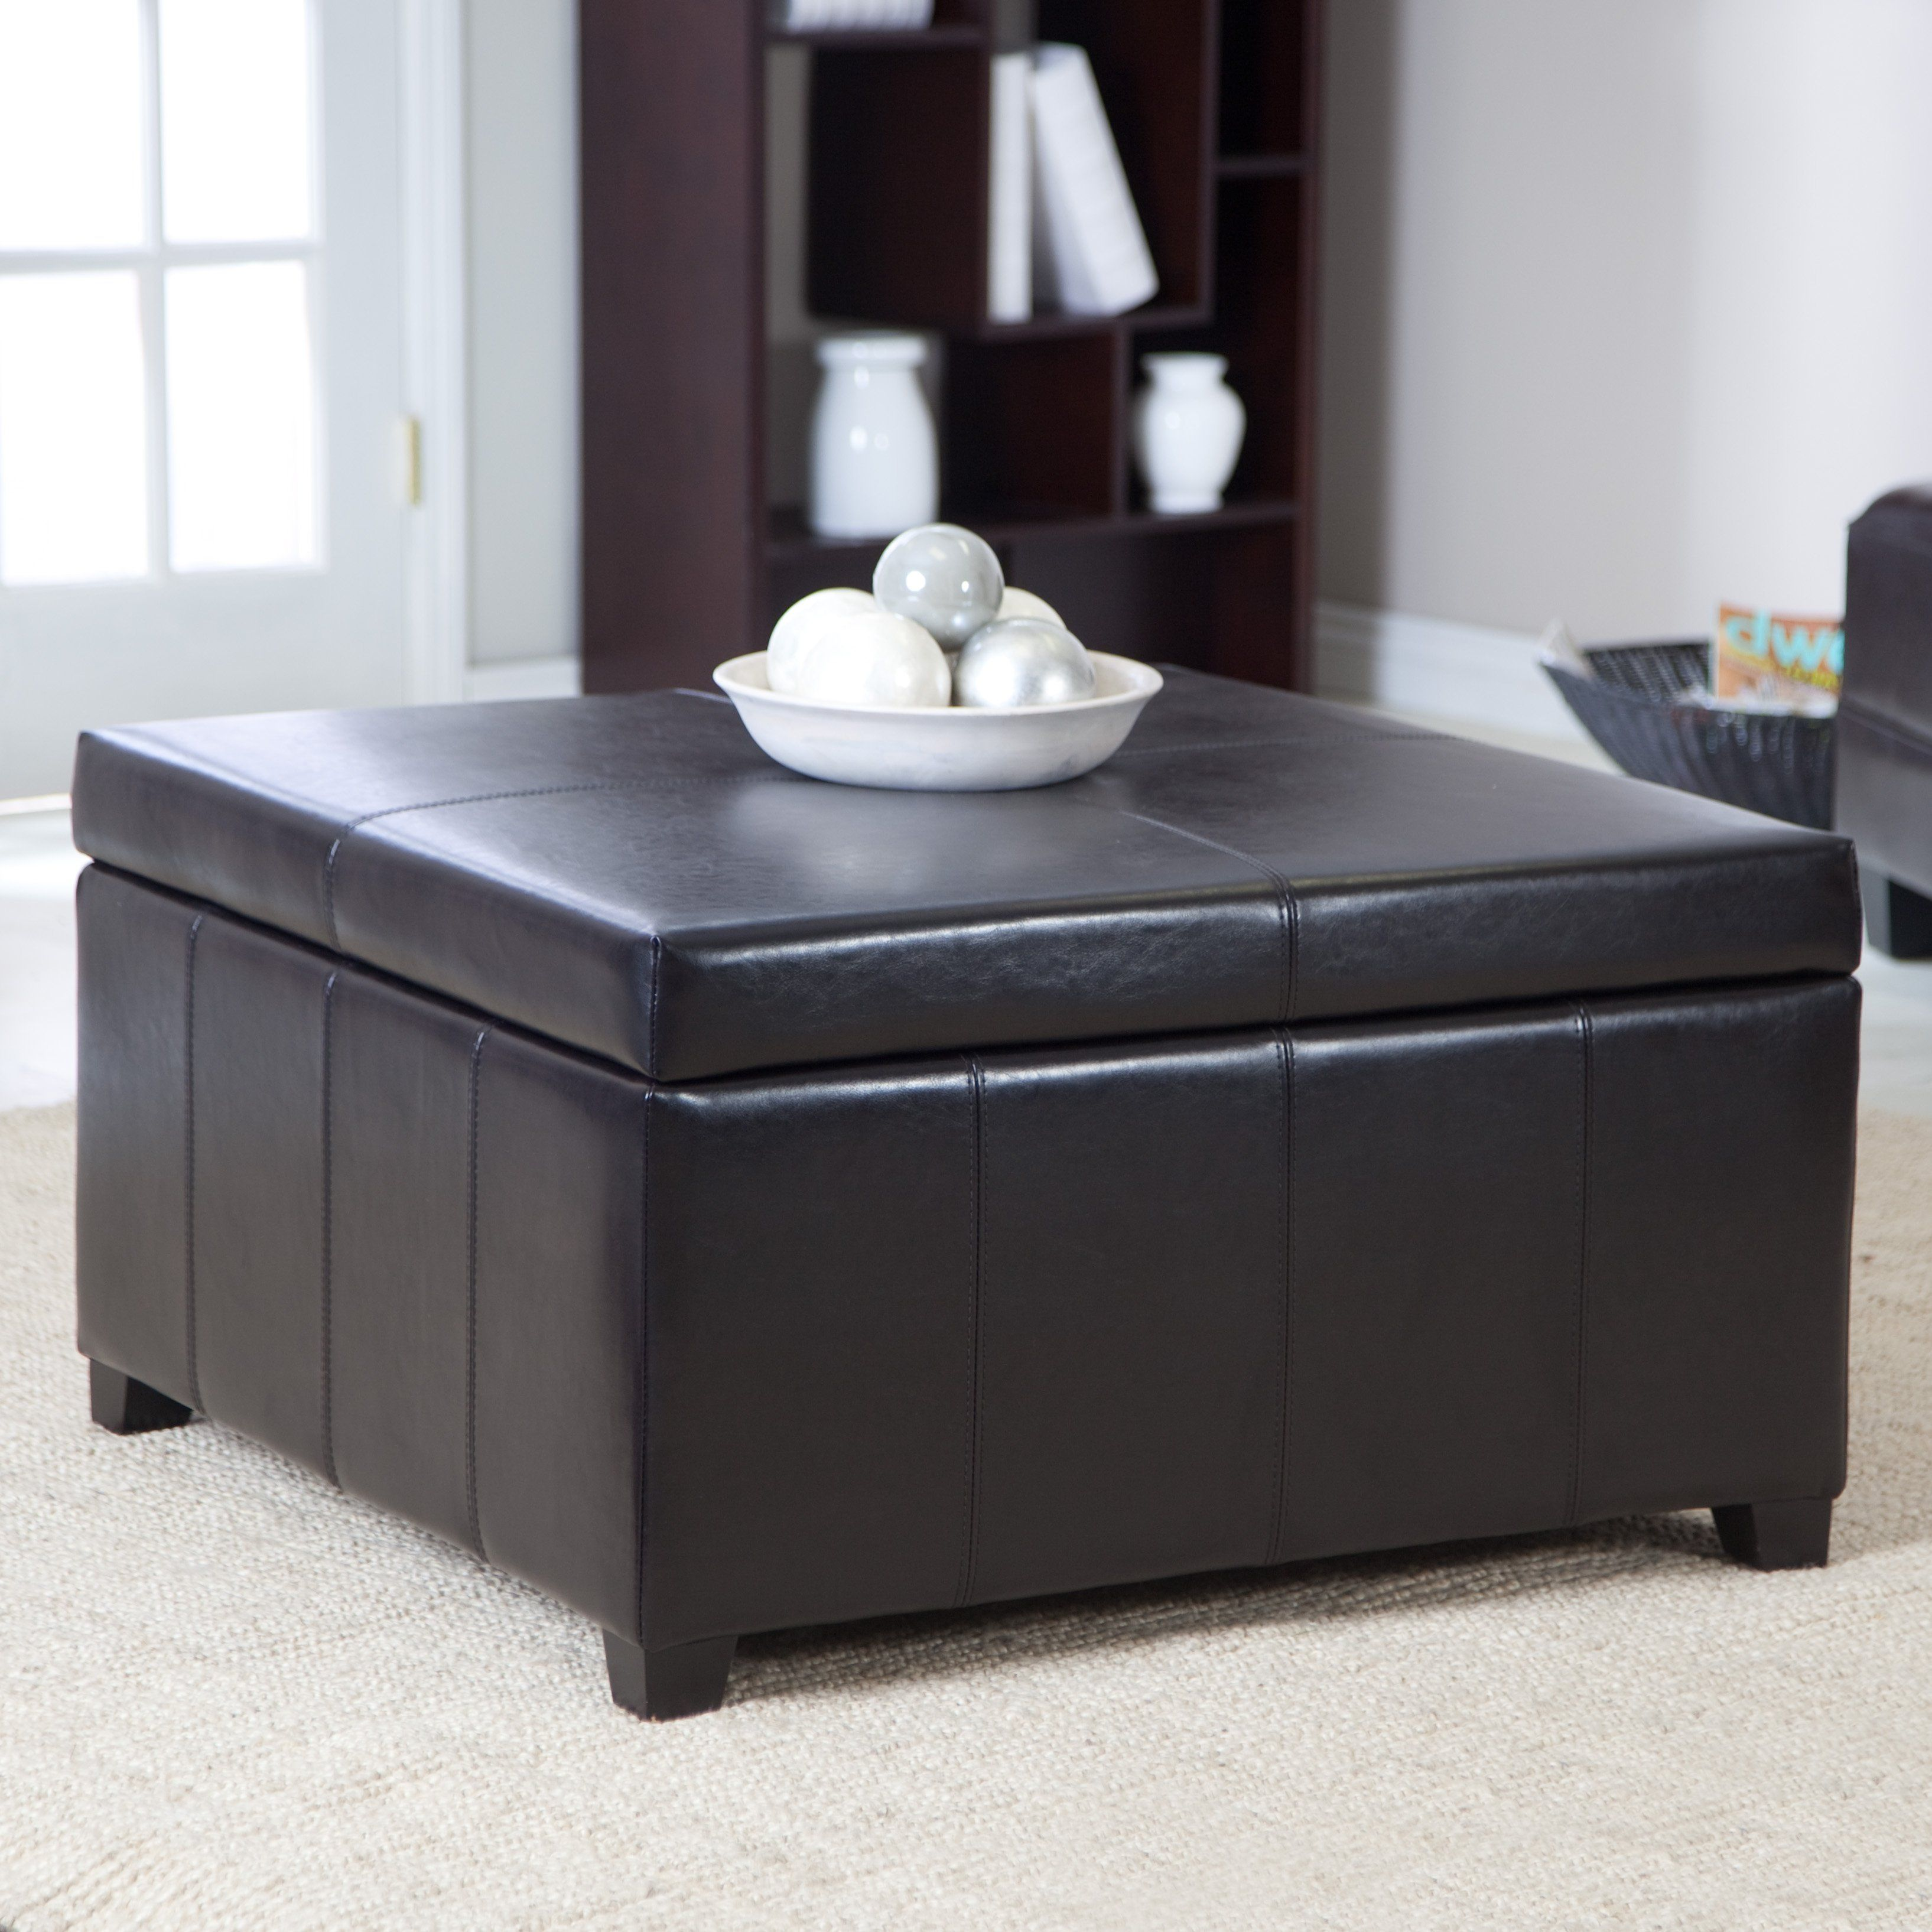 Cube Coffee Table With 4 Storage Ottomans Download Popular Square Black Leather Upholstered O [ 3270 x 3270 Pixel ]